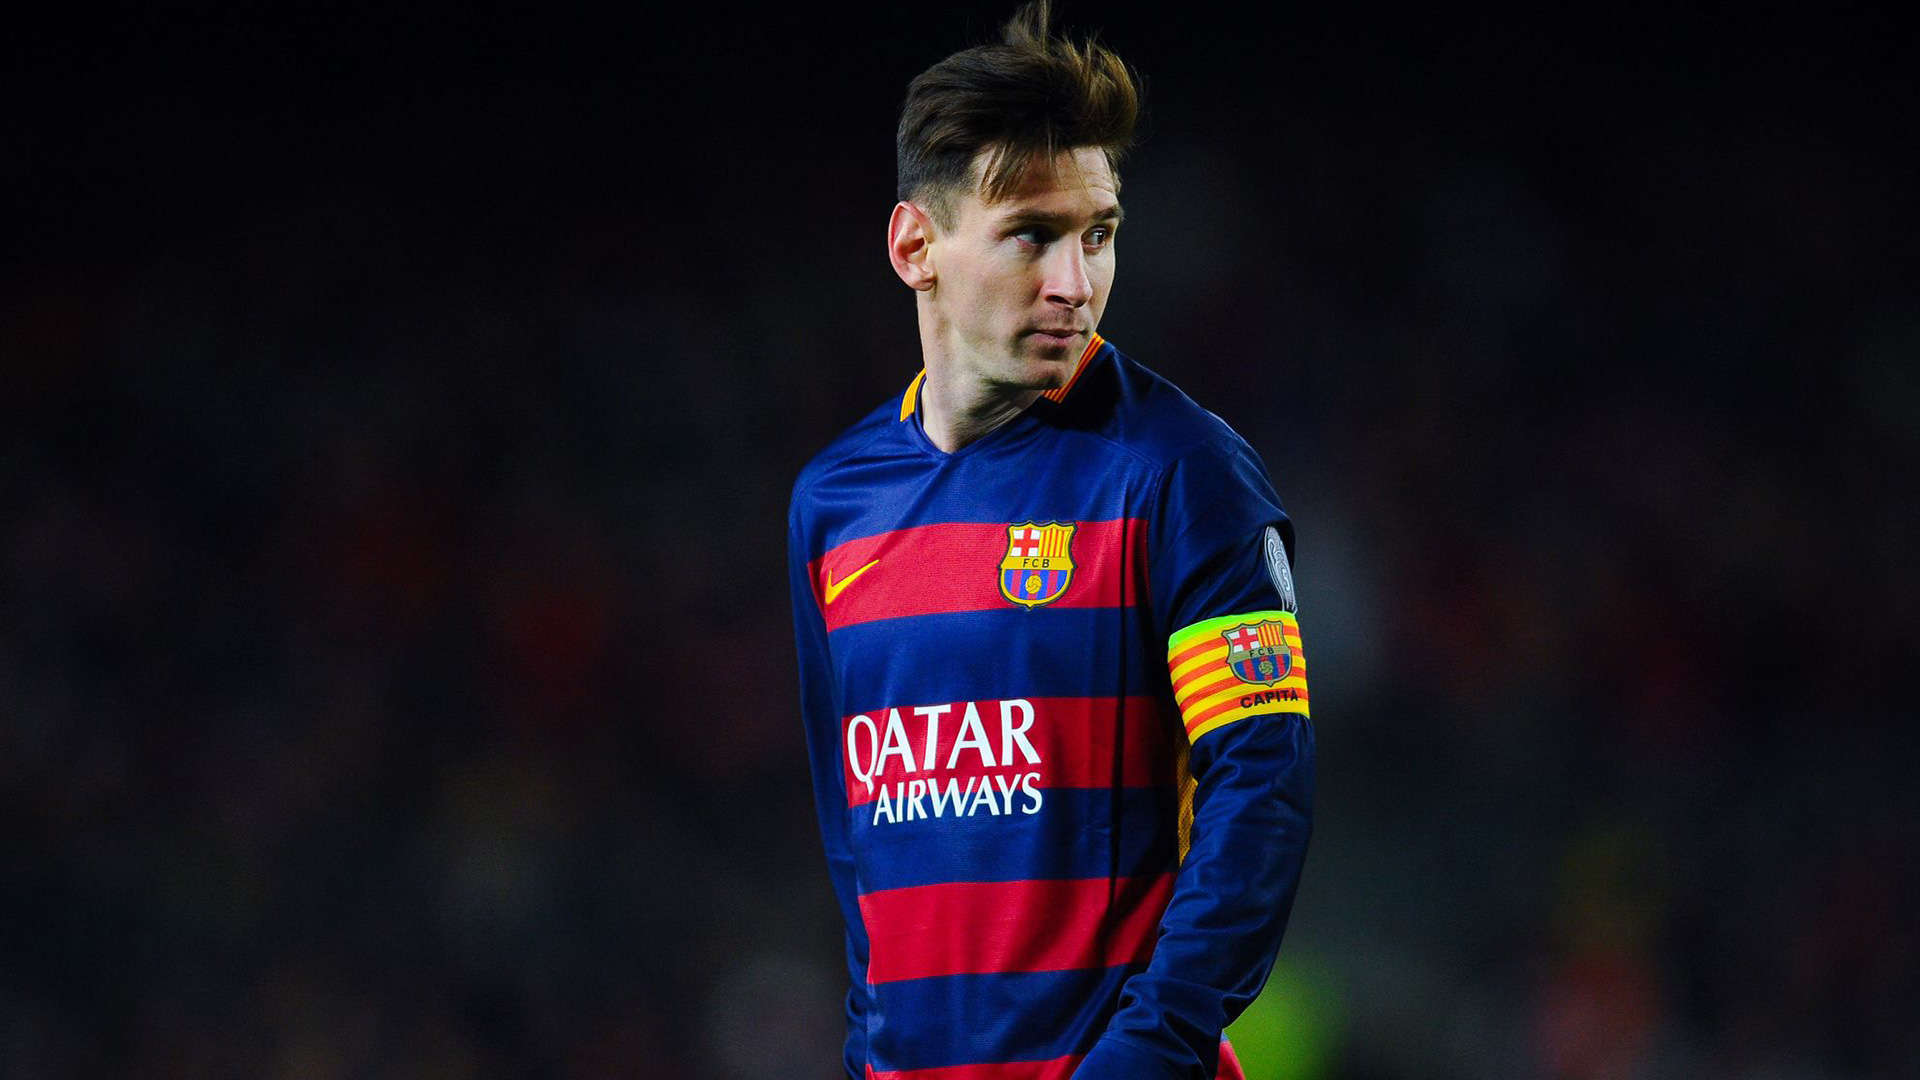 Messi Latest Wallpapers HD